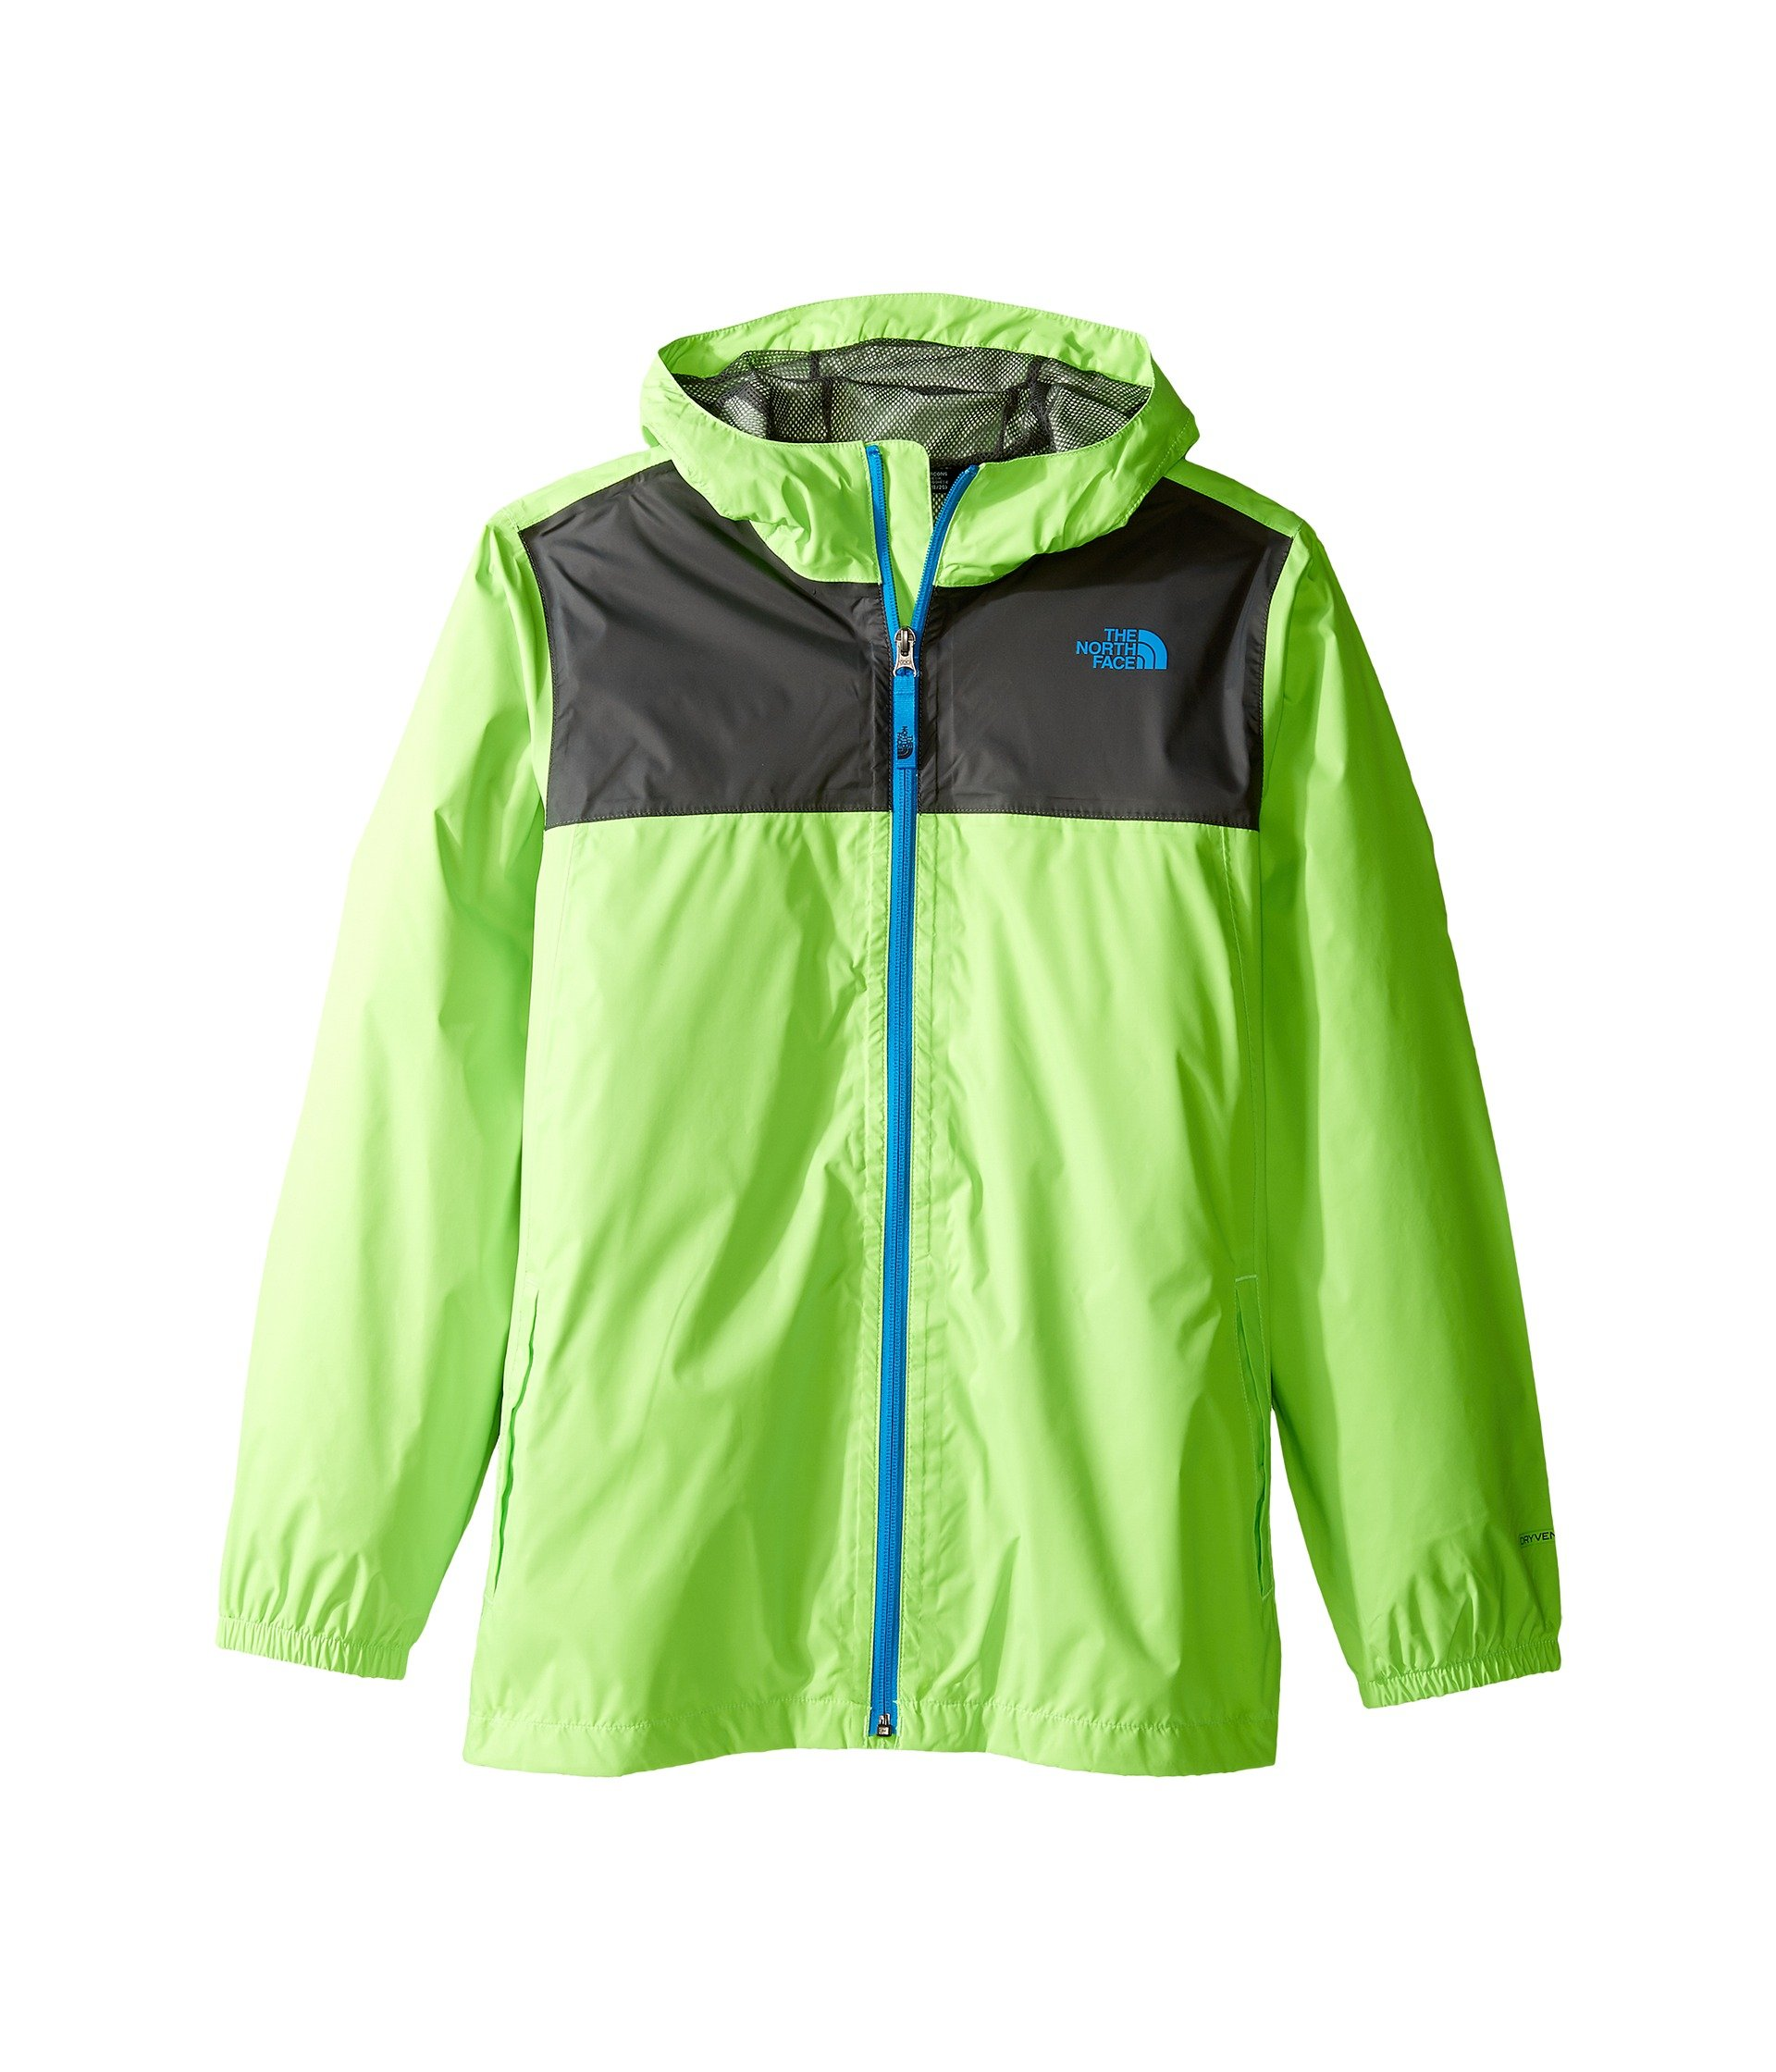 a1dda75f4 The North Face Boy s Zipline Rain Jacket Power Green XS